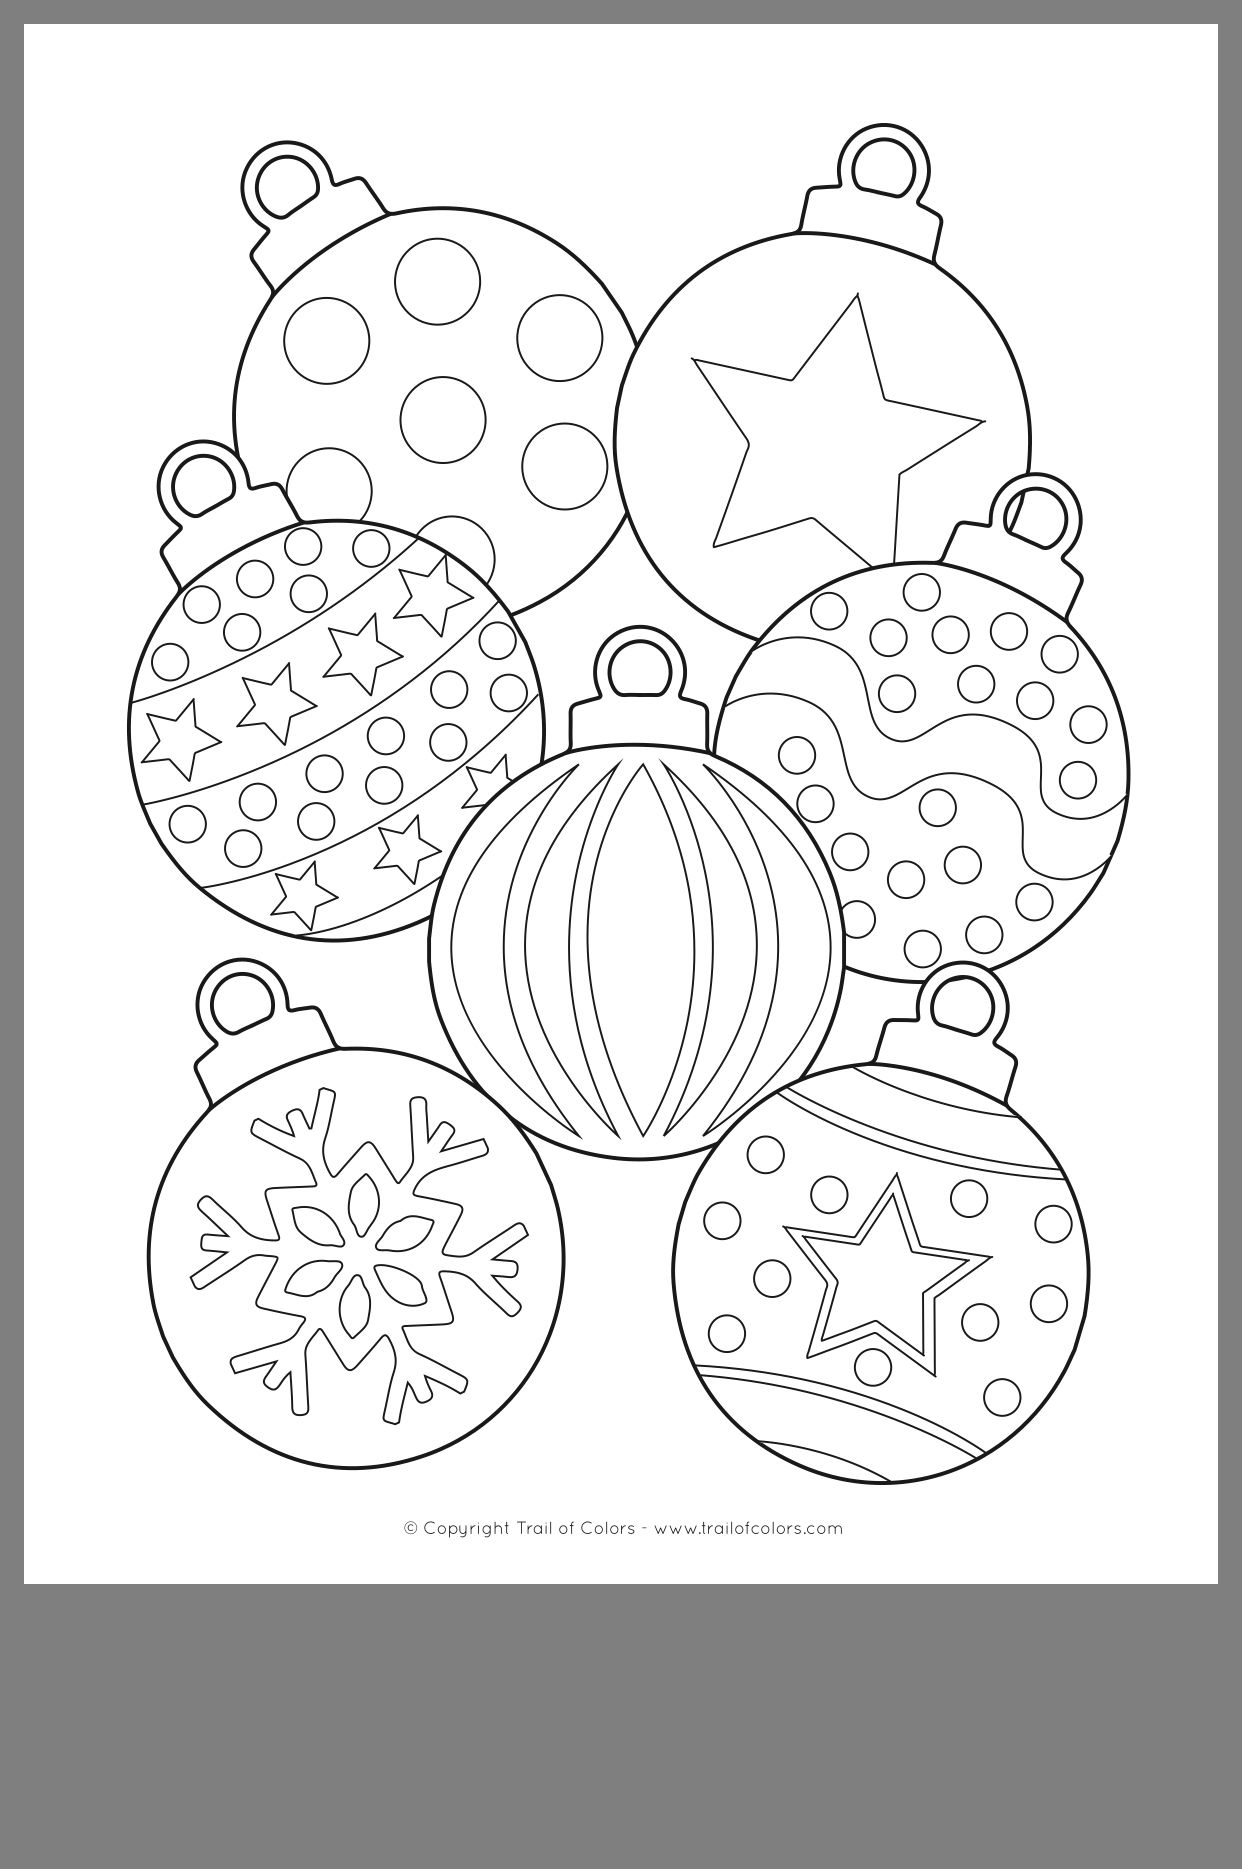 Pin By Virginia Grant On Coloring Books